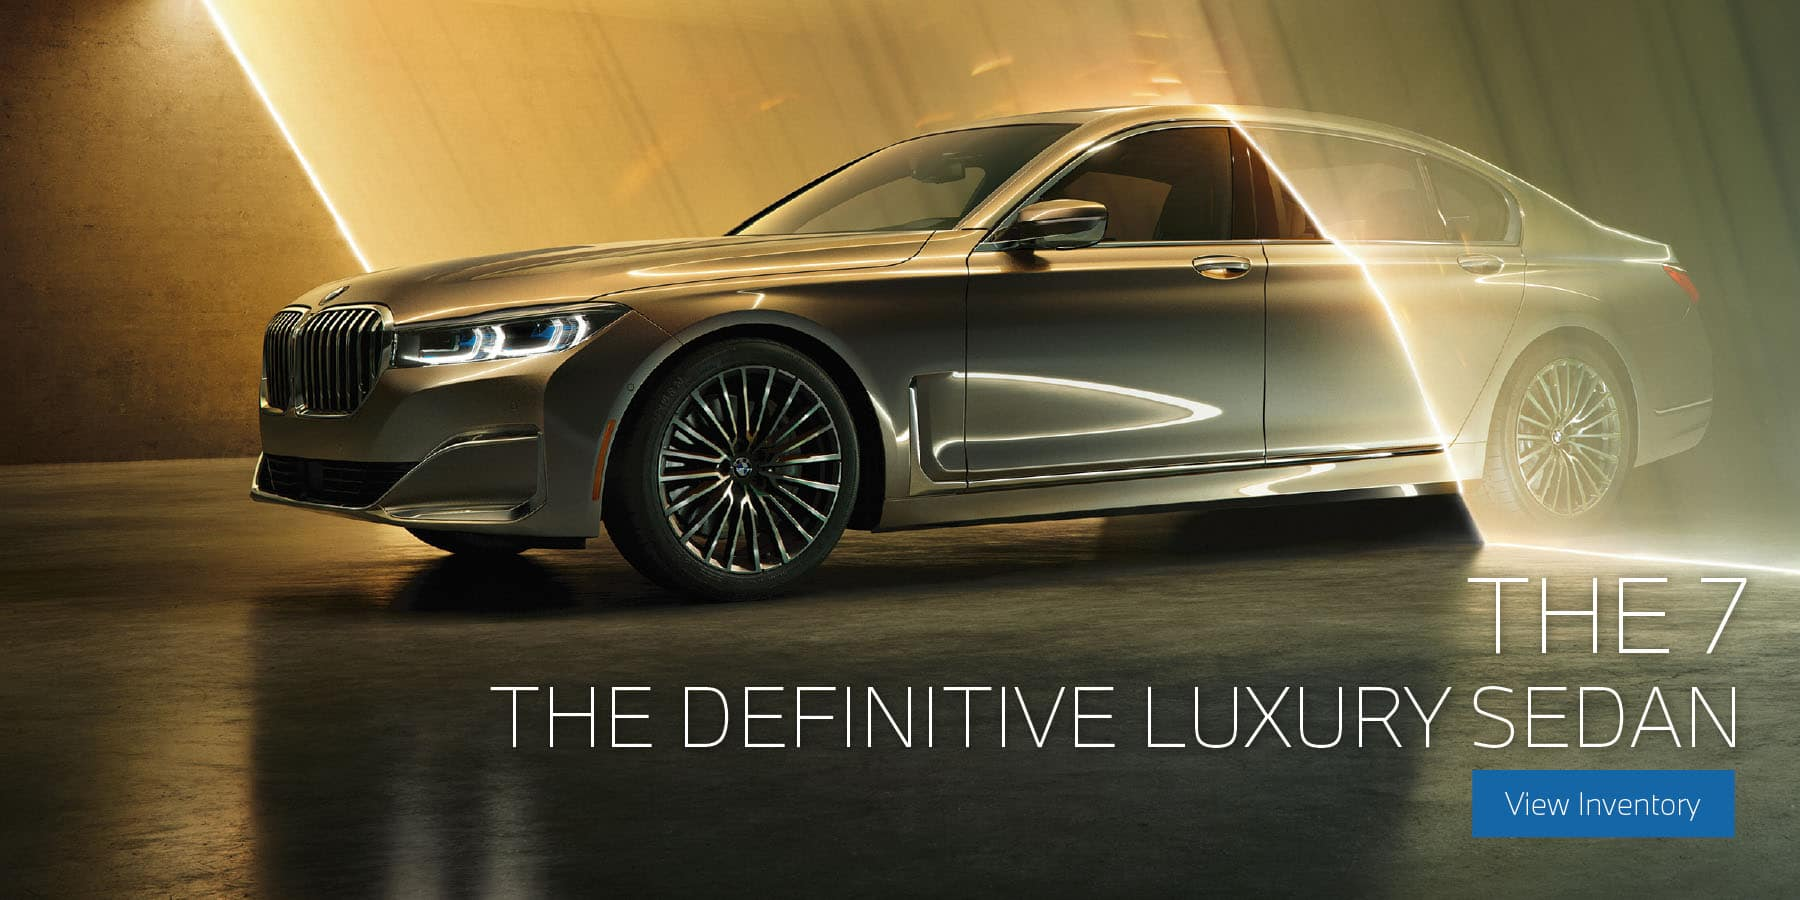 The 7 - The Definitive Luxury Sedan